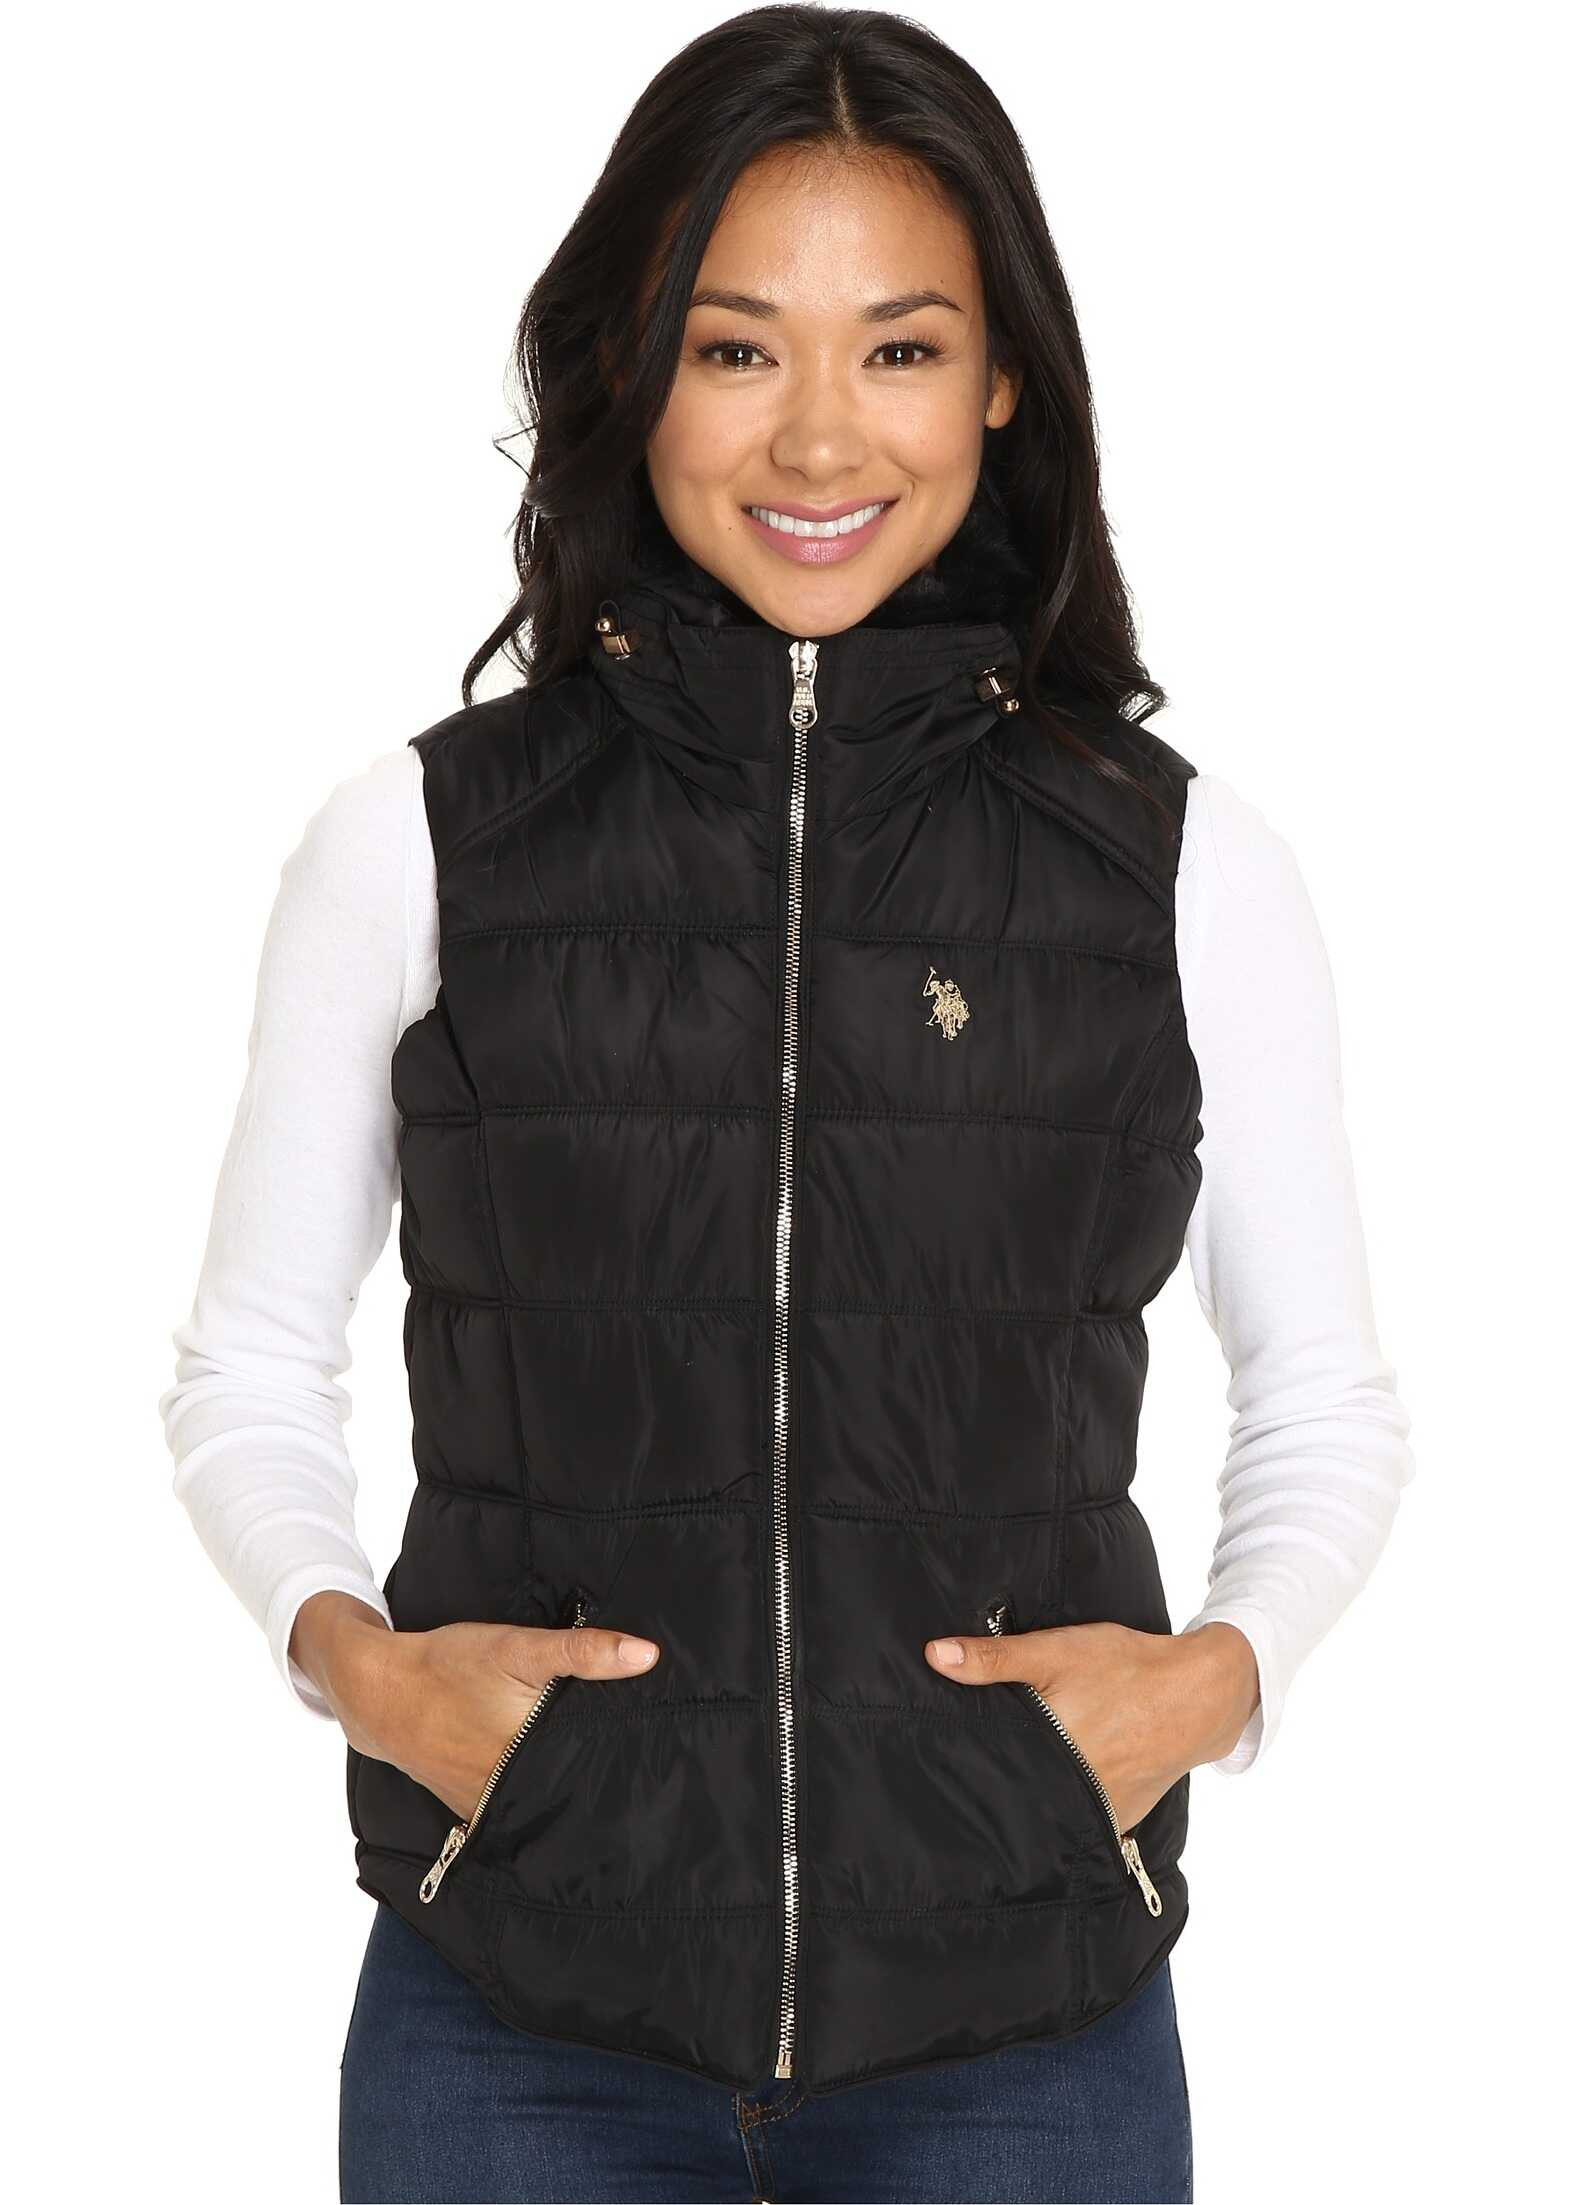 U.S. POLO ASSN. Quilted Vest with Shirttail Hem Black